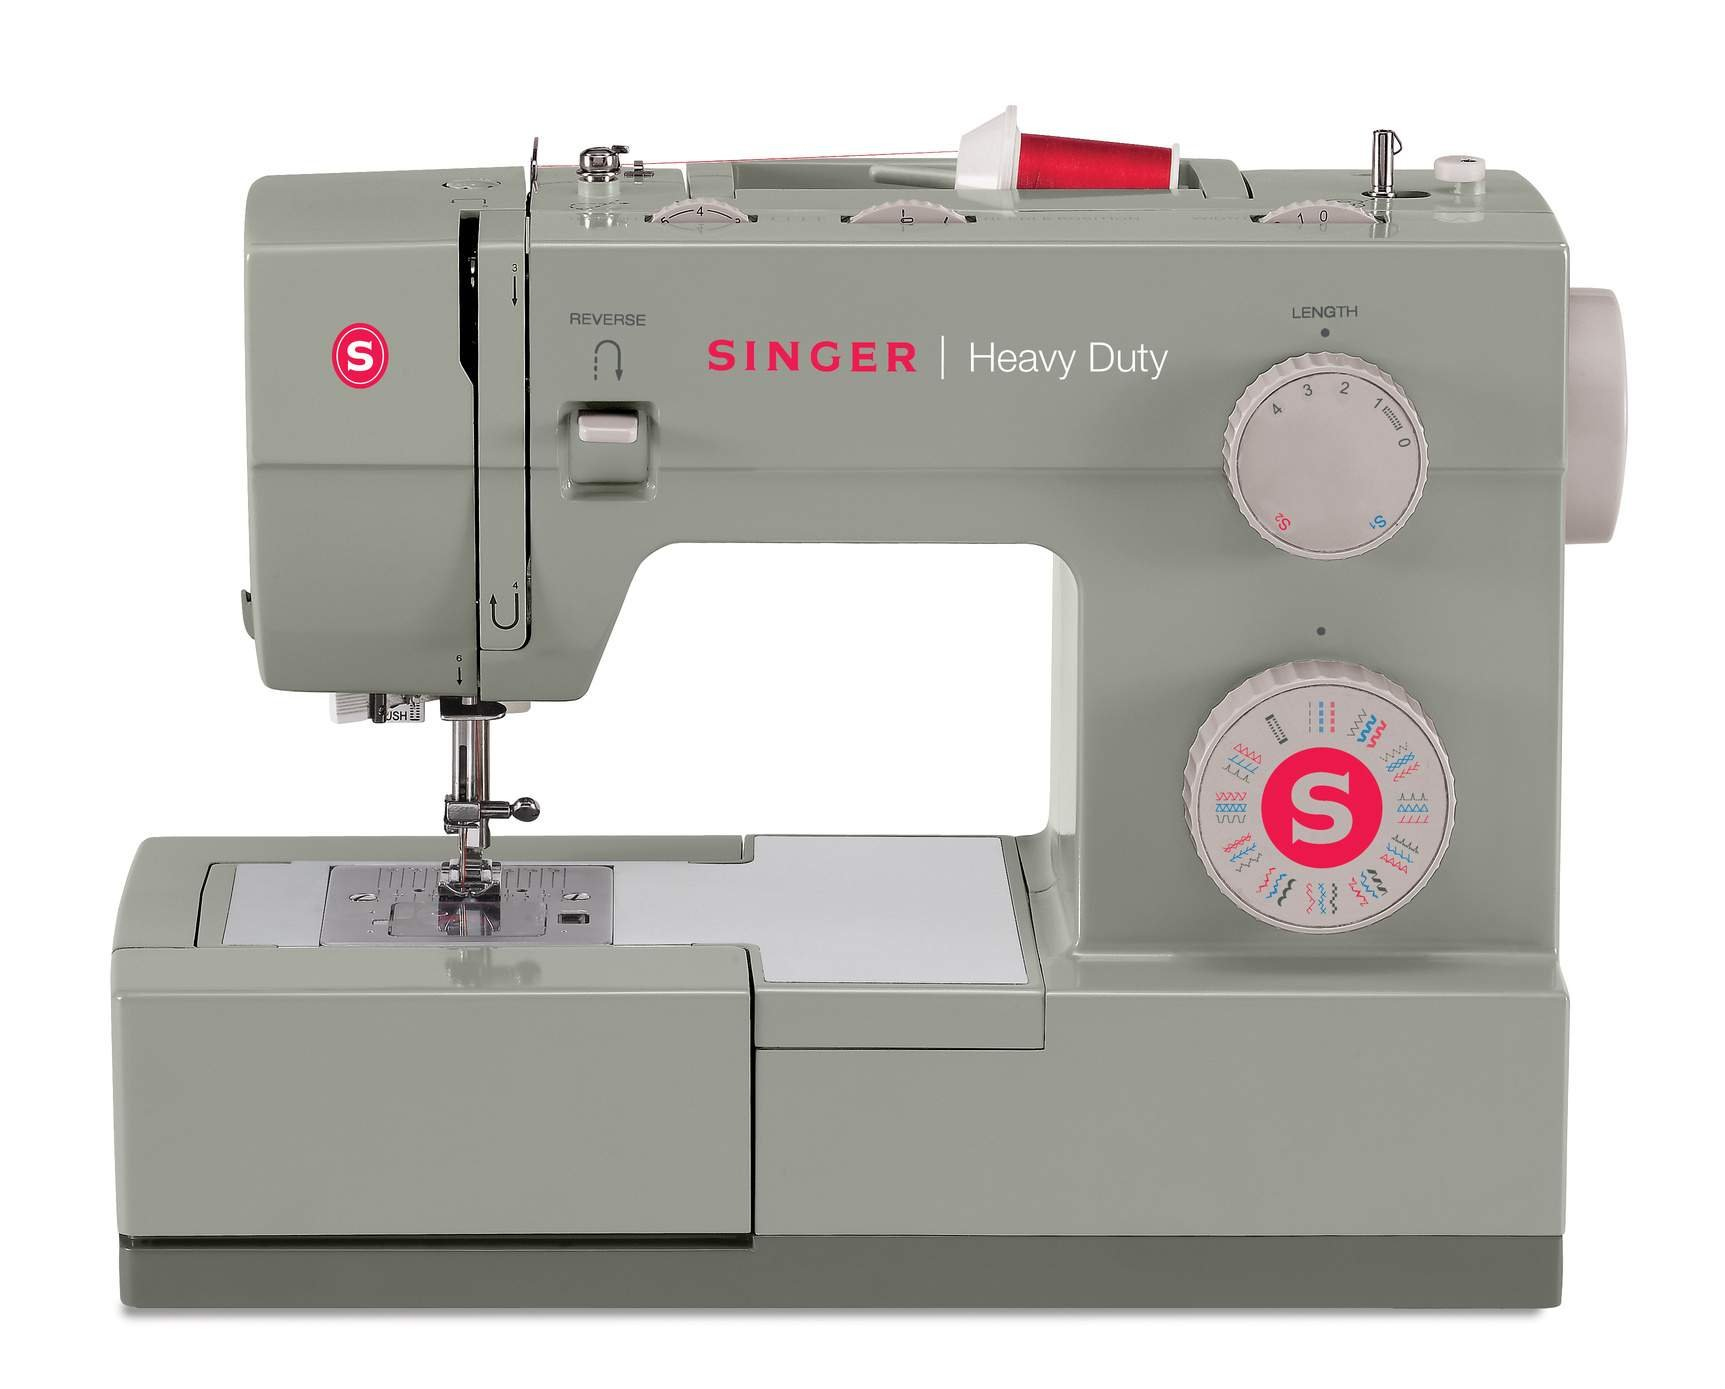 Singer Heavy Duty 4452 Sewing Machine Now $299.99